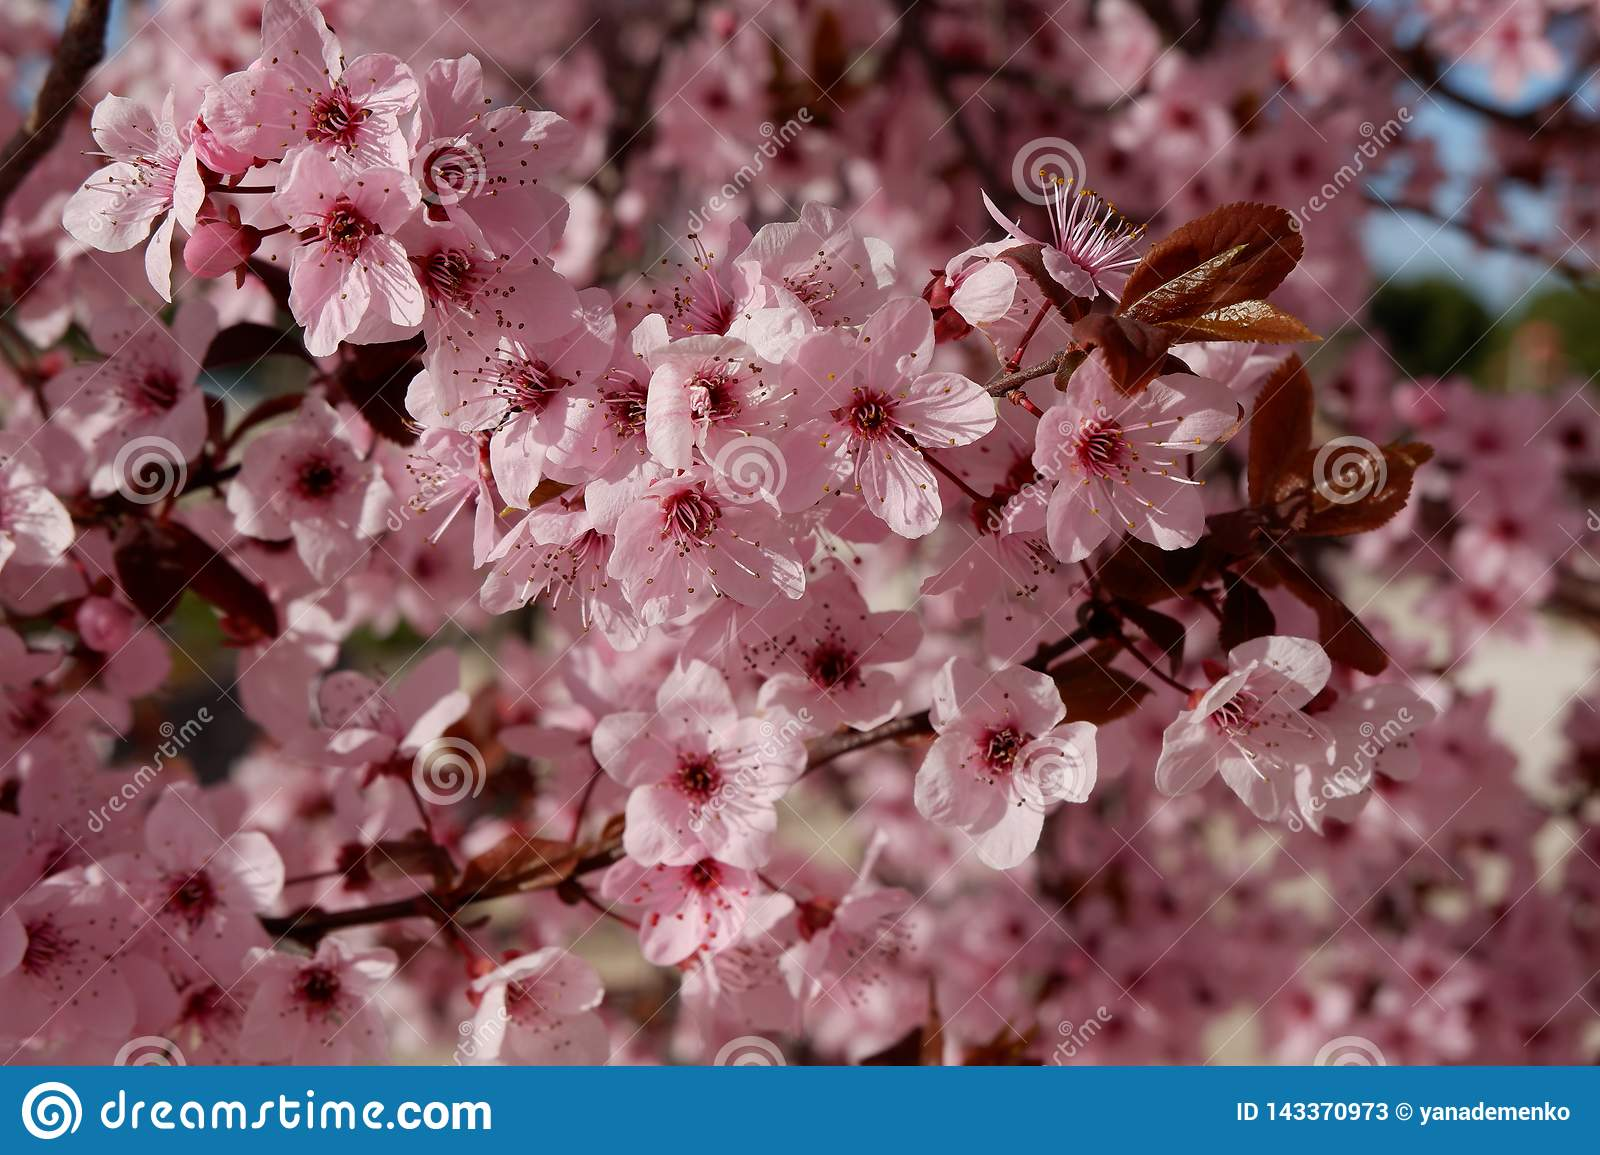 Japanese plum or cherry tree in blossom